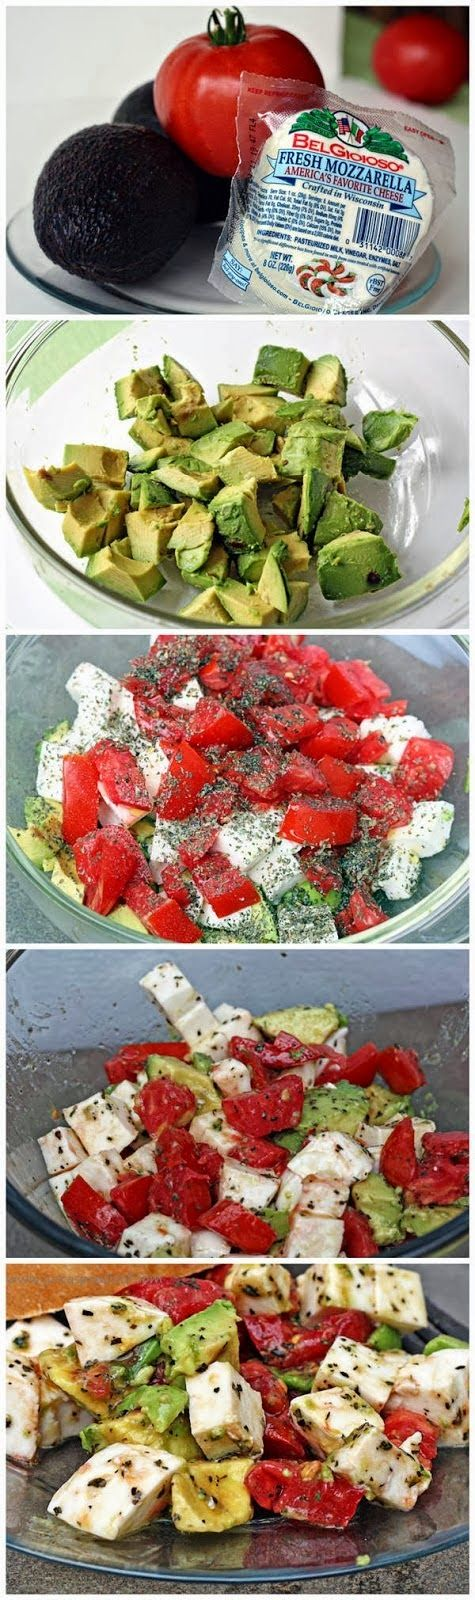 Ingredients :   2 avocados  (peeled, pitted, & cubed)  2 - 3 tomatoes (cubed)  1 ball fresh mozzarella cheese (cubed)  2 Tbsp extra vi...